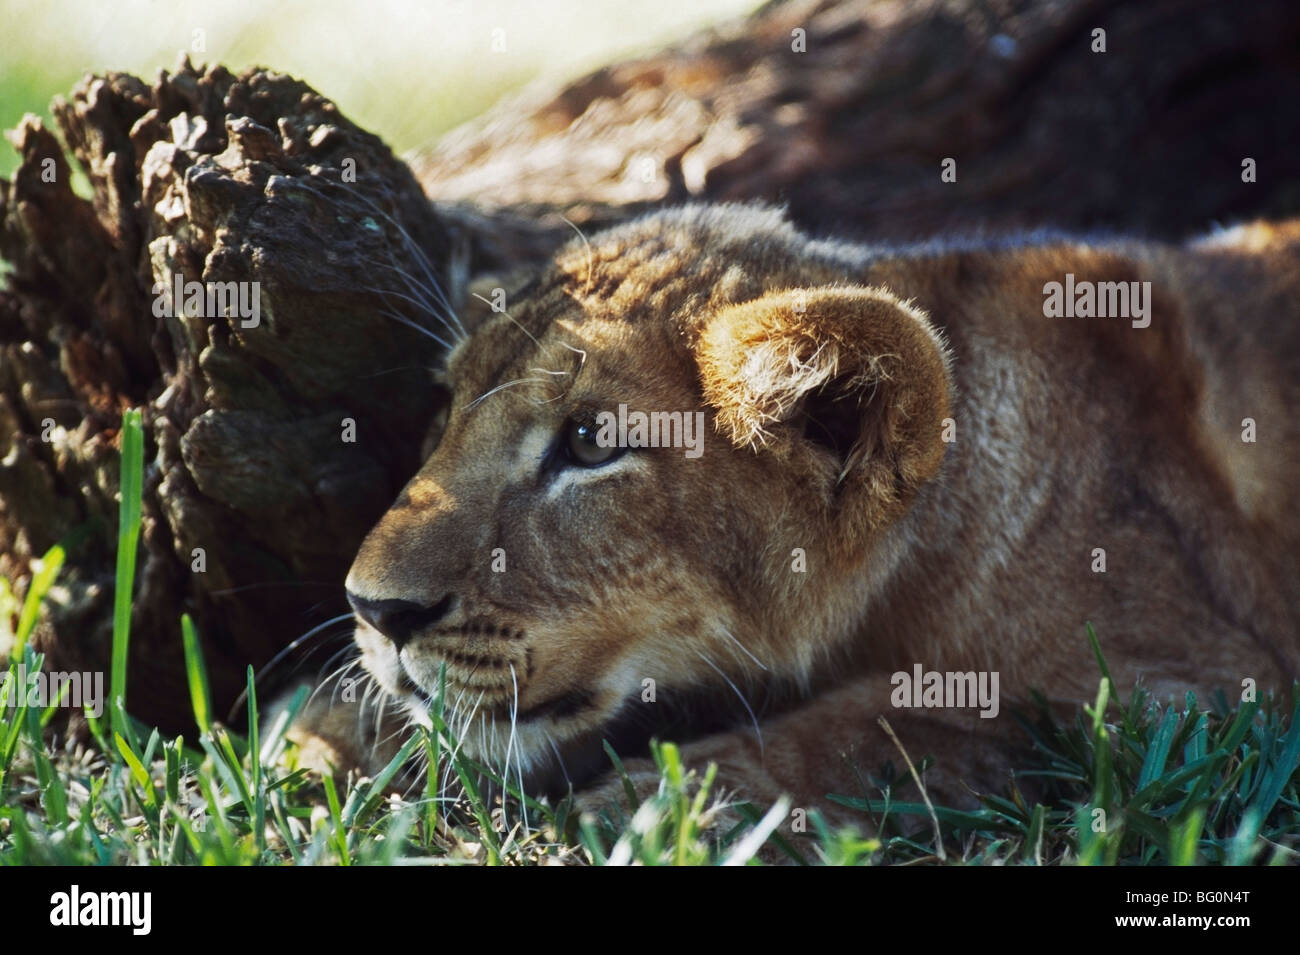 Lion cub crouching behind log, Africa - Stock Image